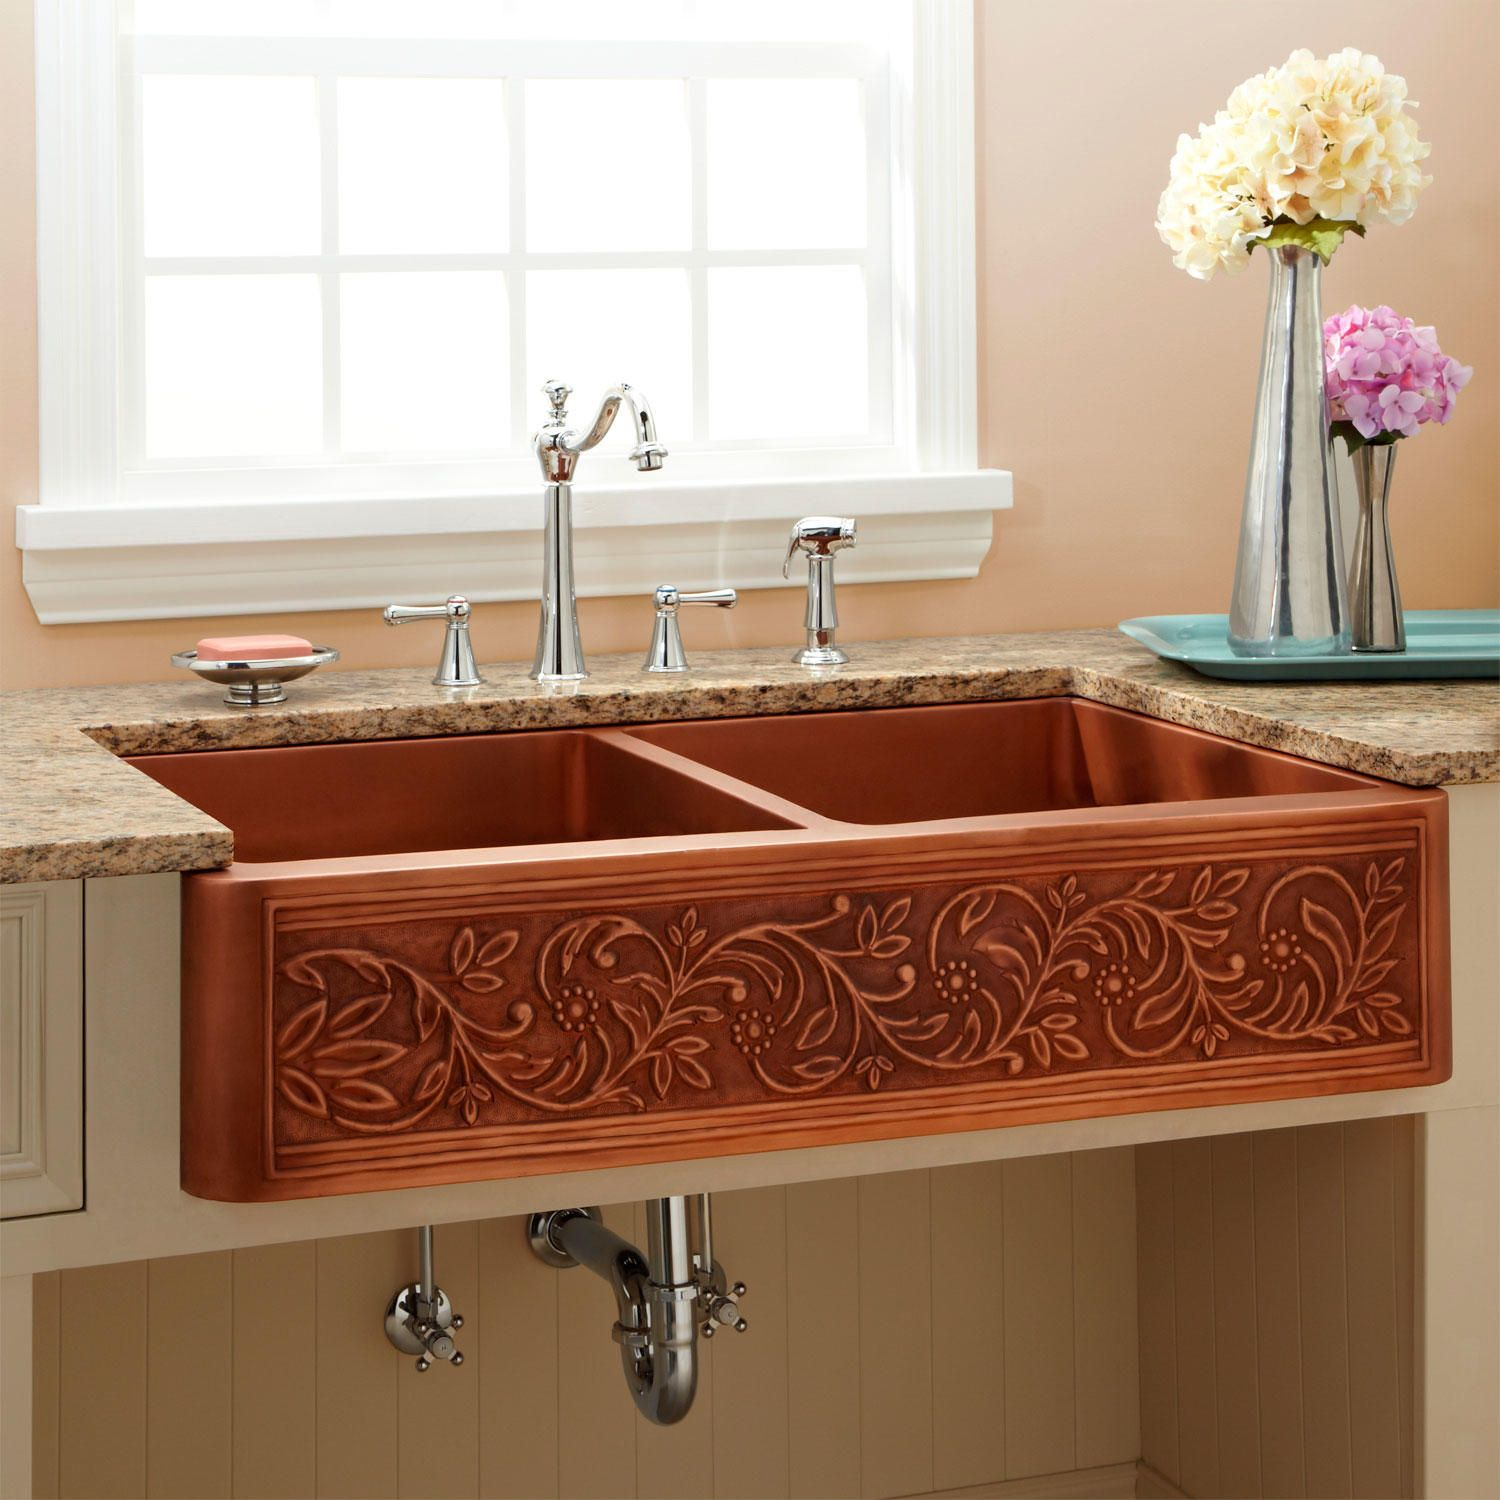 36 Quot Vine Design Double Bowl Copper Farmhouse Sink With